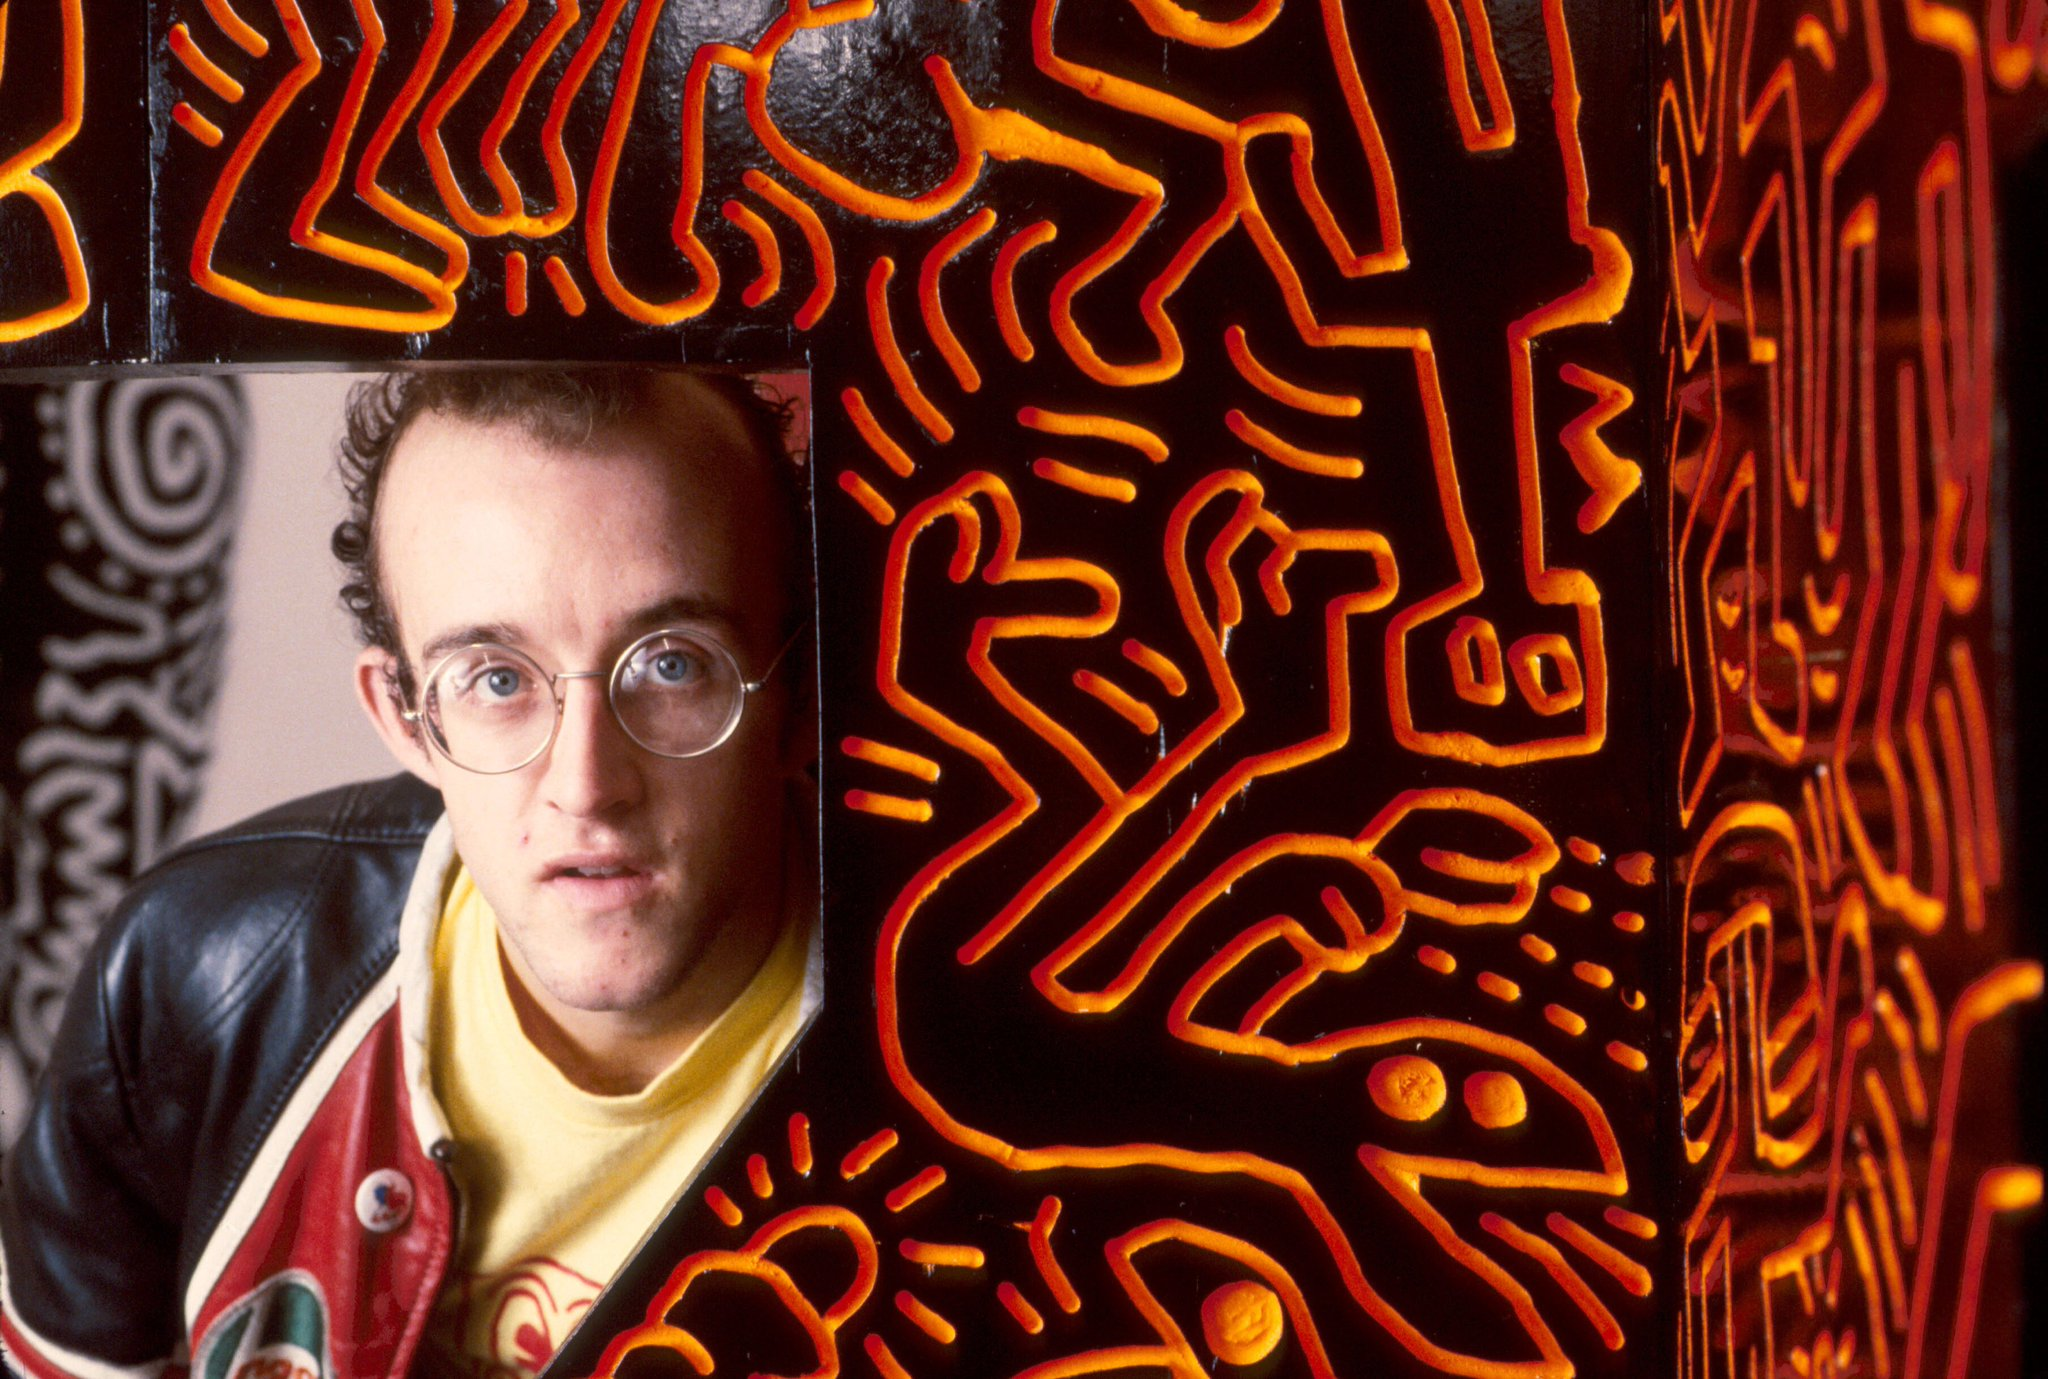 Top story: \Happy birthday to Keith Haring, an activist and an a see more